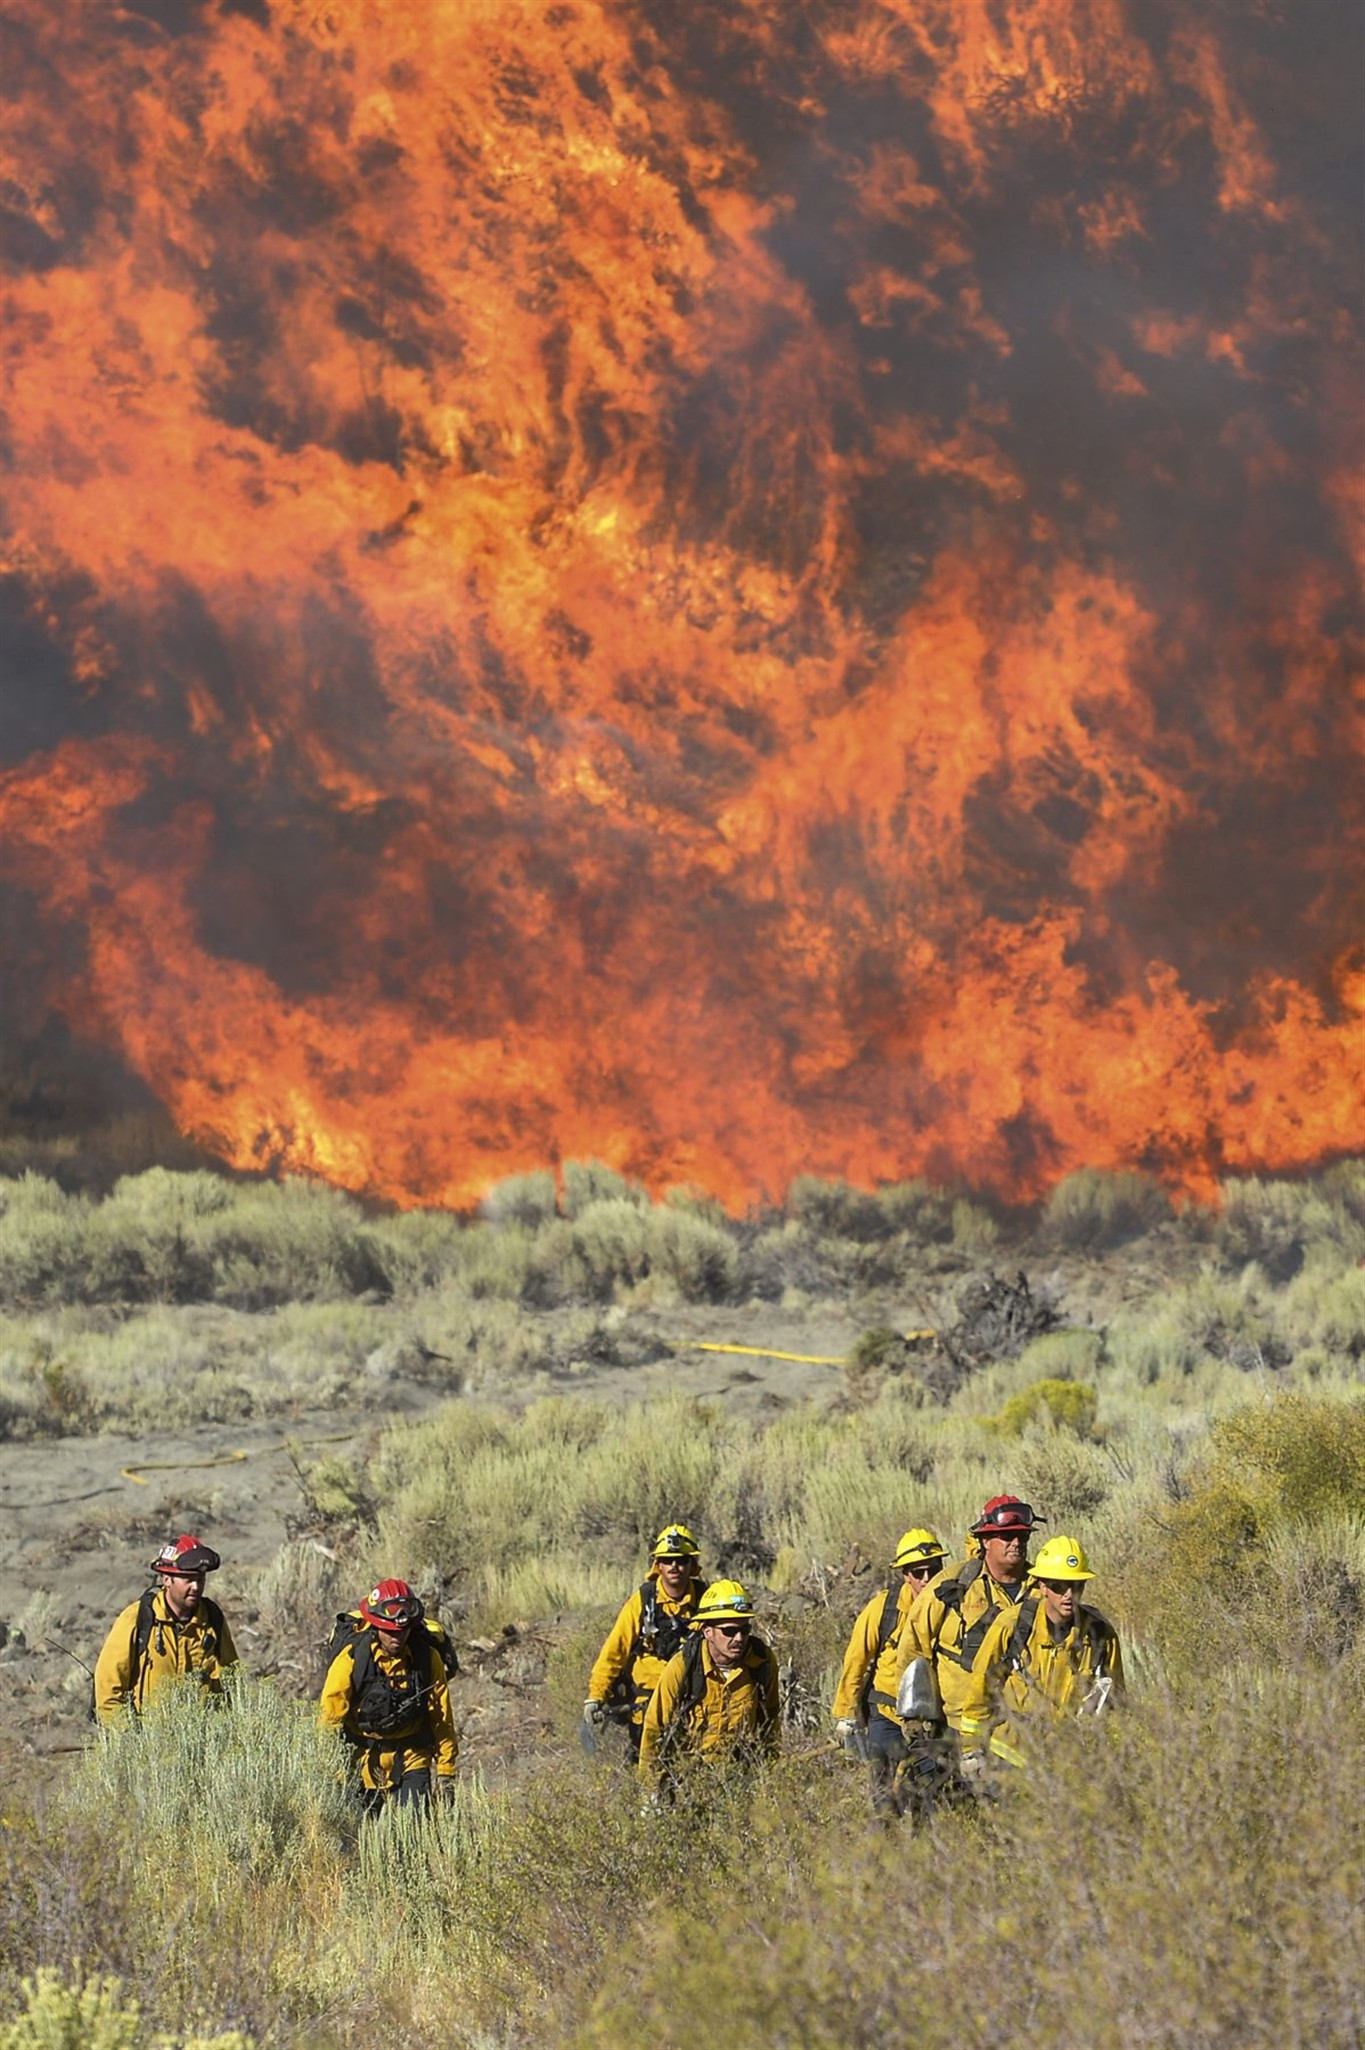 In this Wednesday, Aug. 17, 2016 photo, firefighters scramble from flames after a wildfire blew up near Zermatt Drive and Pacific Crest in Wrightwood, Calif. As flames overtook the pine forests surrounding Wrightwood, only half of the residents in this picturesque mountain town heeded the evacuation orders. Californians are increasingly ignoring the orders, growing accustomed to wildfires as the region faces what could be the most hazardous season yet. | Photo by David Crane/Los Angeles Daily News via AP; St. George News